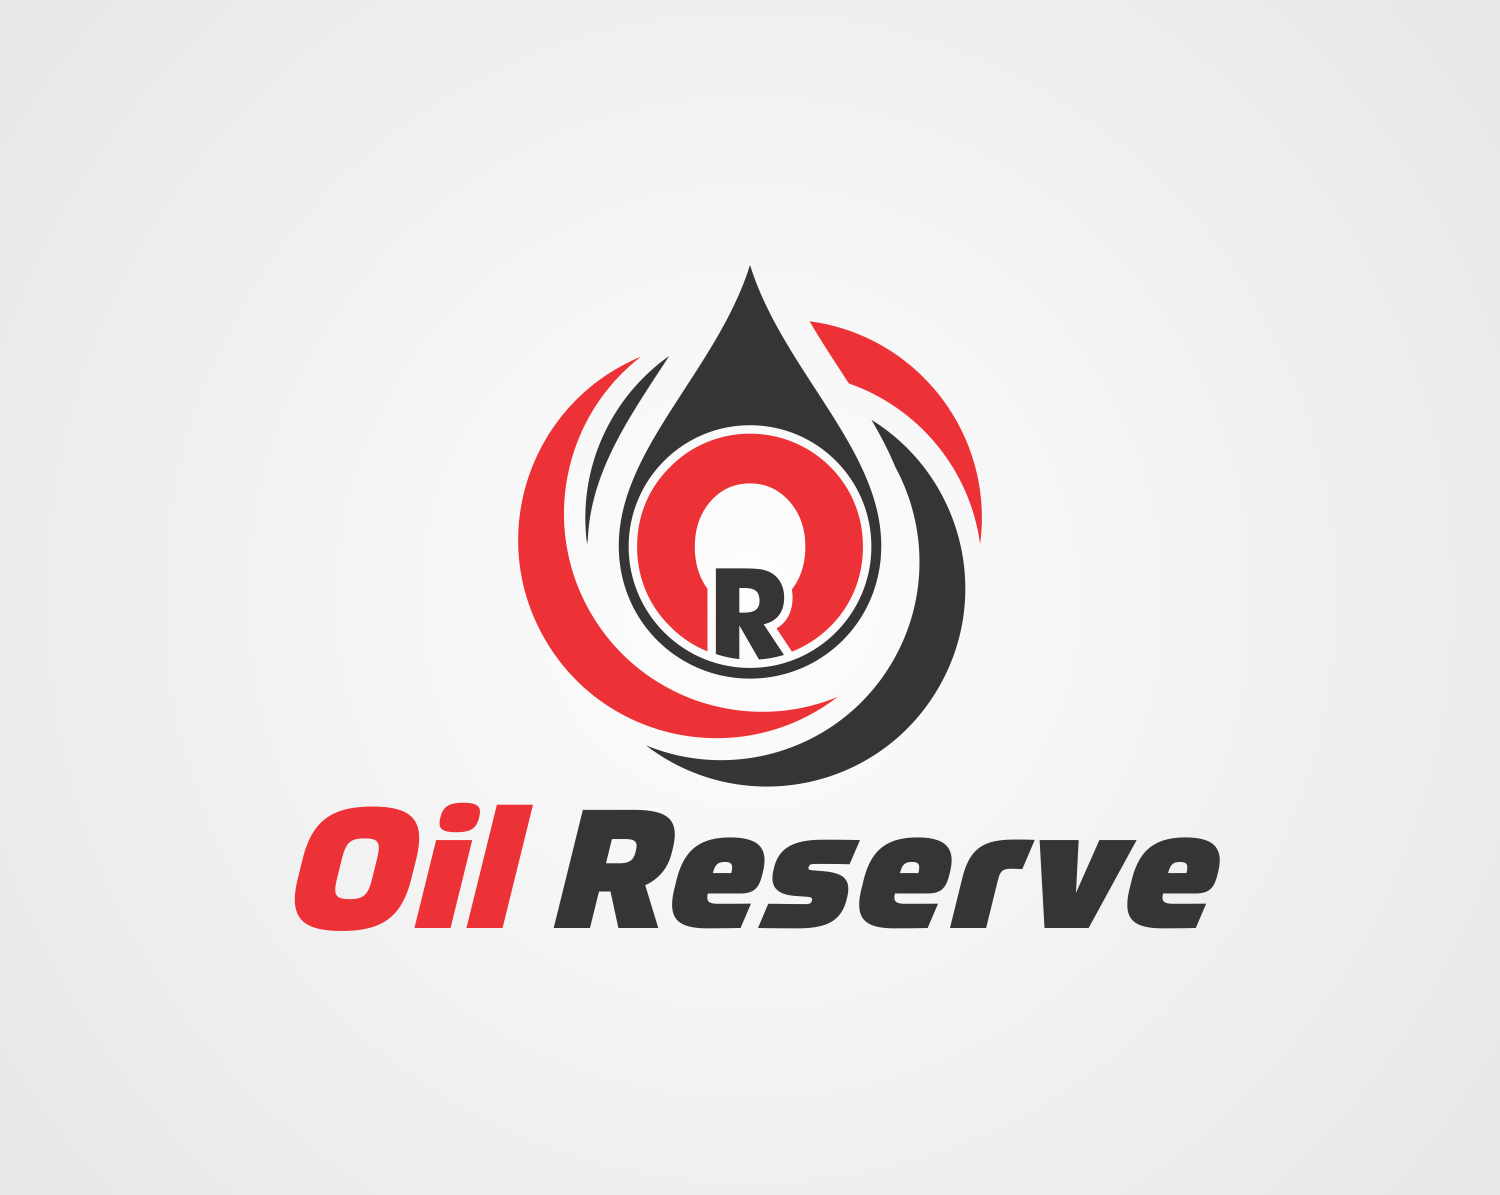 Serious professional logo design for matrix global holdings by logo design by mehulpawar75 for oil reserve an oil trading company needs simple logo biocorpaavc